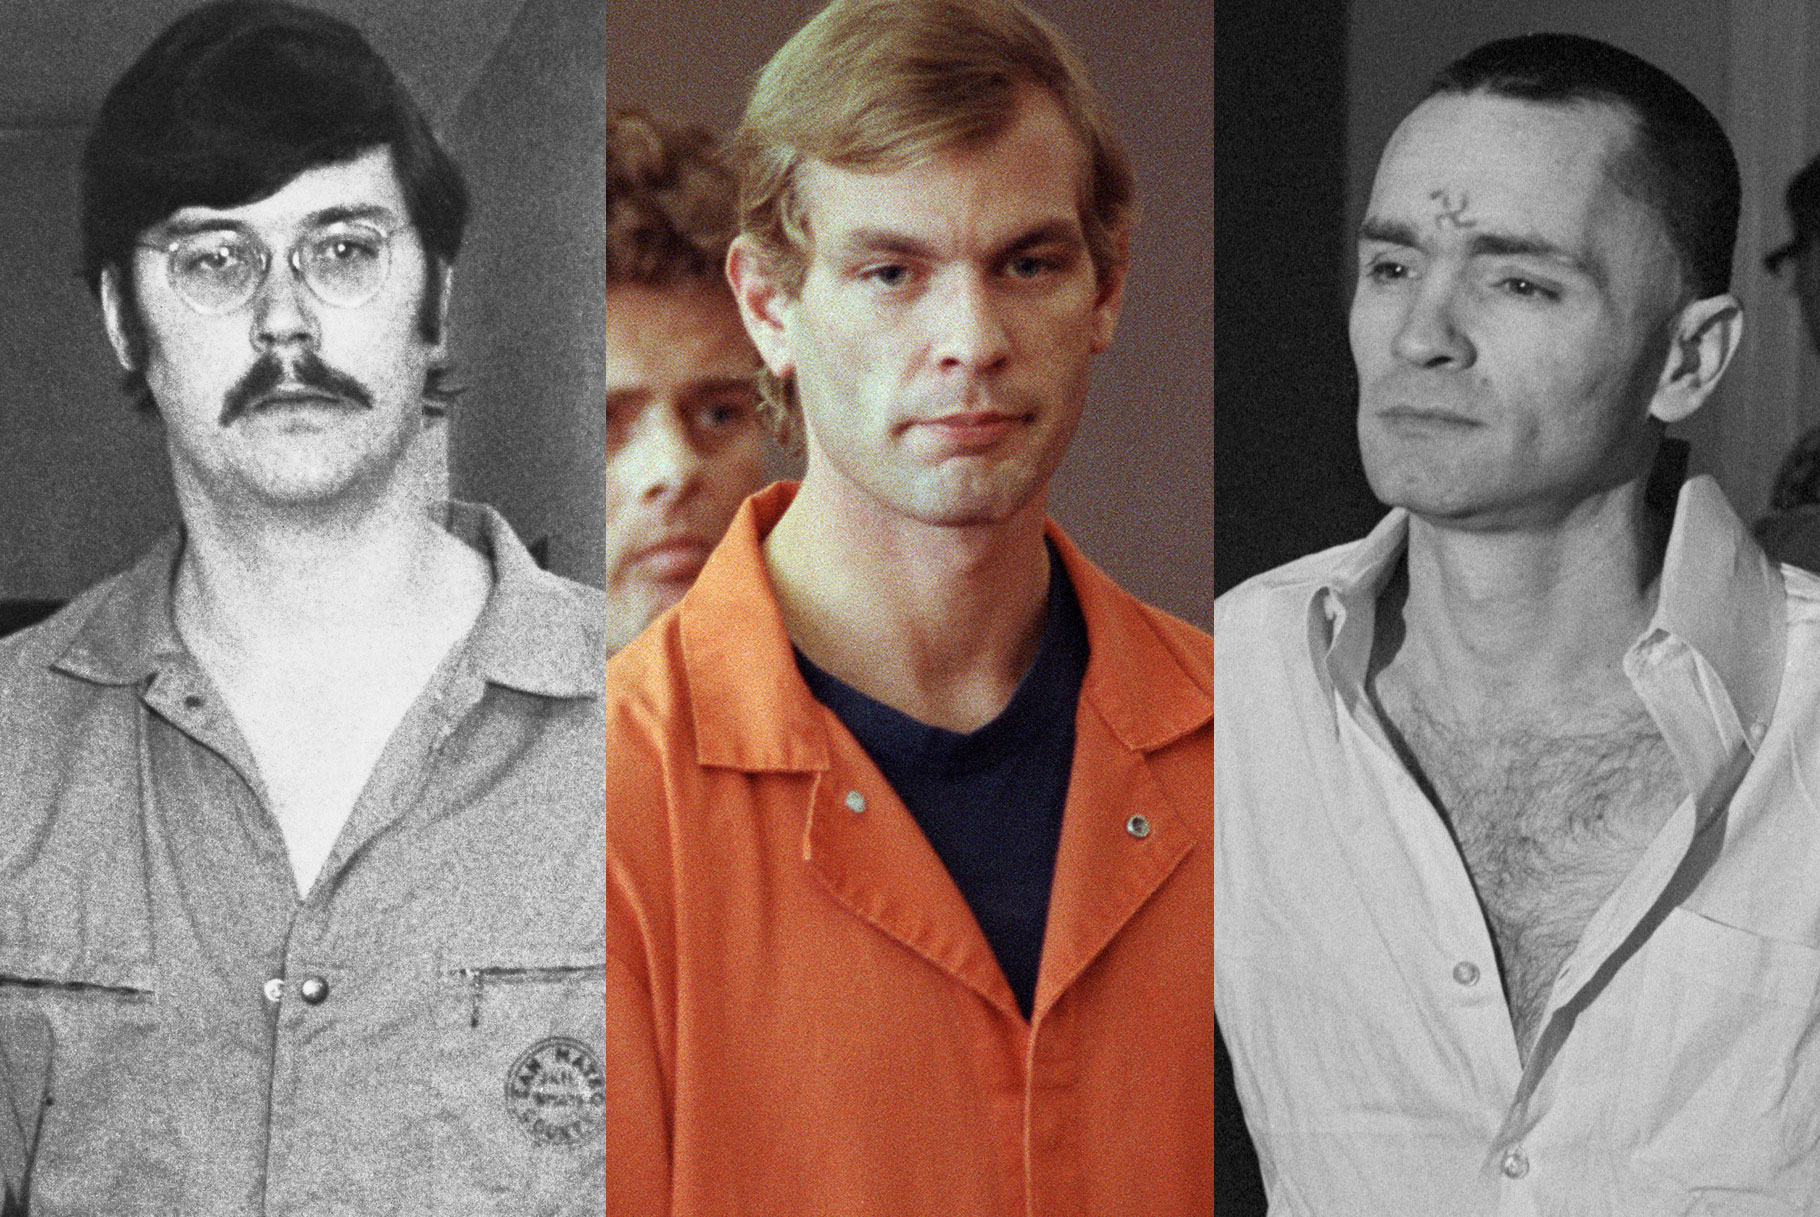 From Terrifying Killers To Unbelievable Crimes — Oxygen True Crime Documentaries To Watch Now